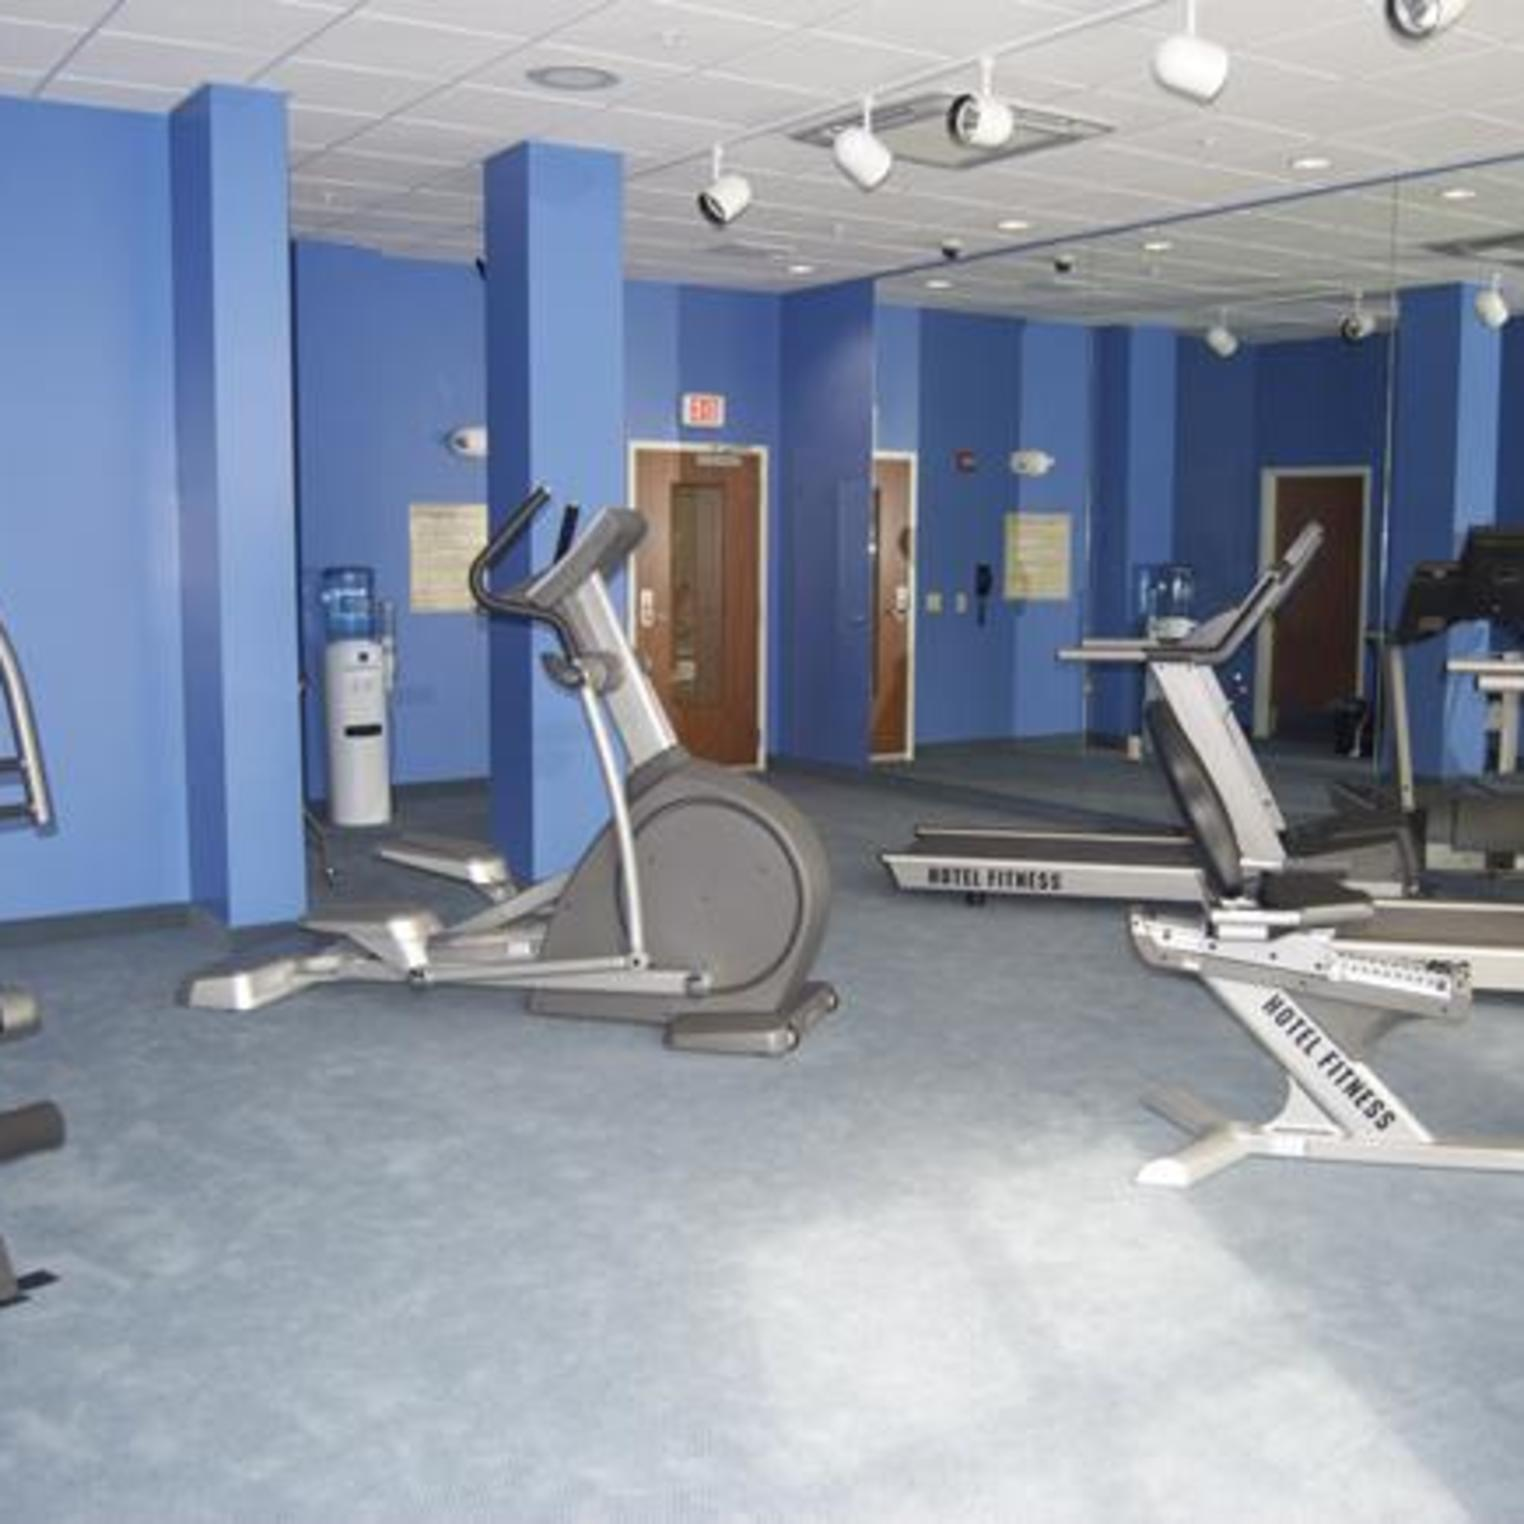 Exercise at your leisure in the fitness room